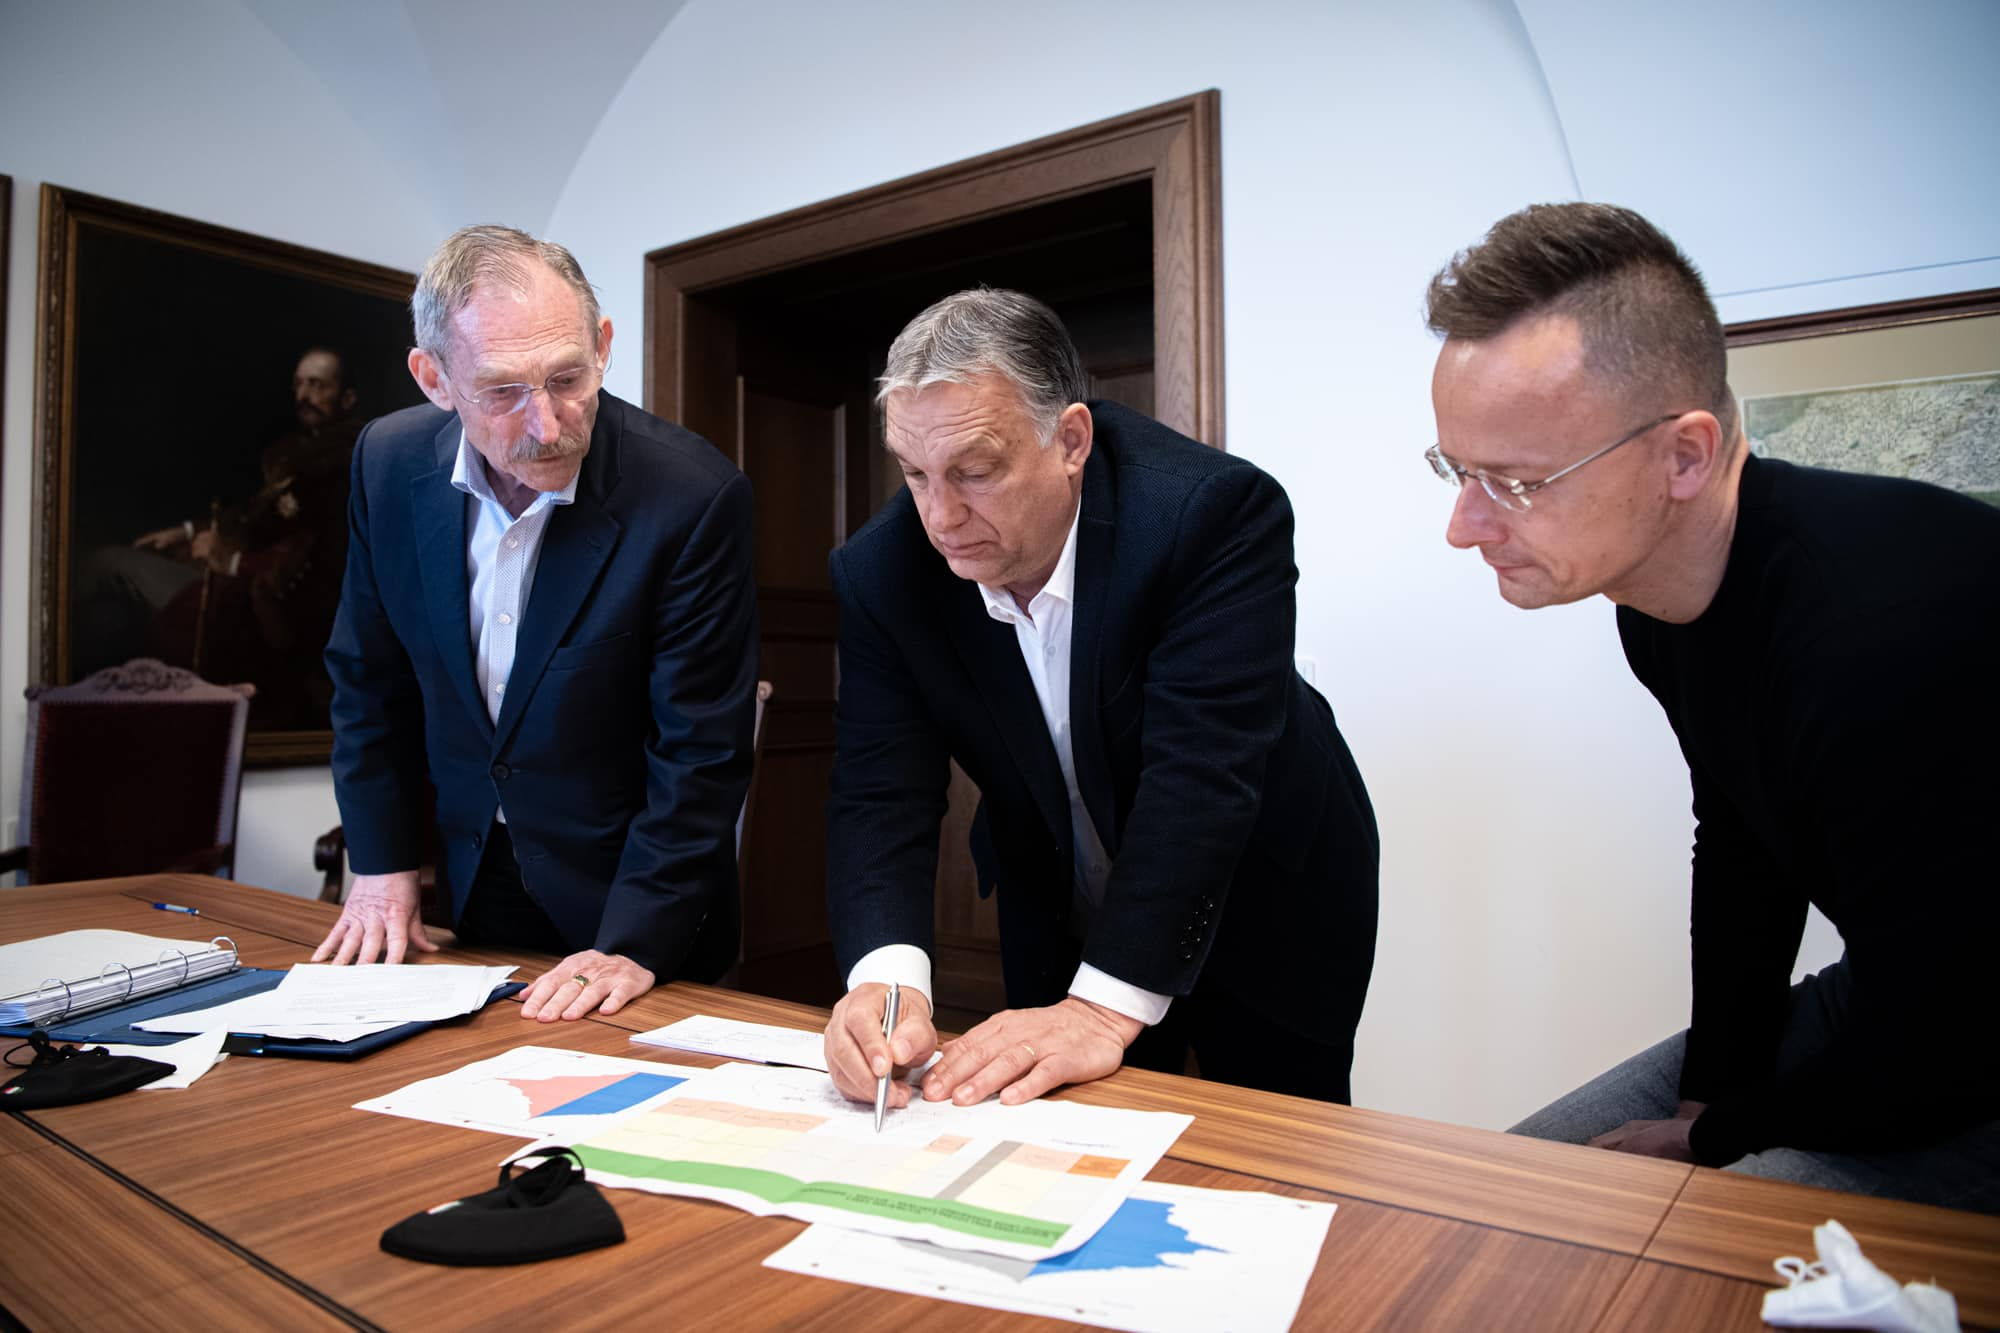 Next Goal At 5 M Vaccinated Against Covid-19 Set By PM Orbán